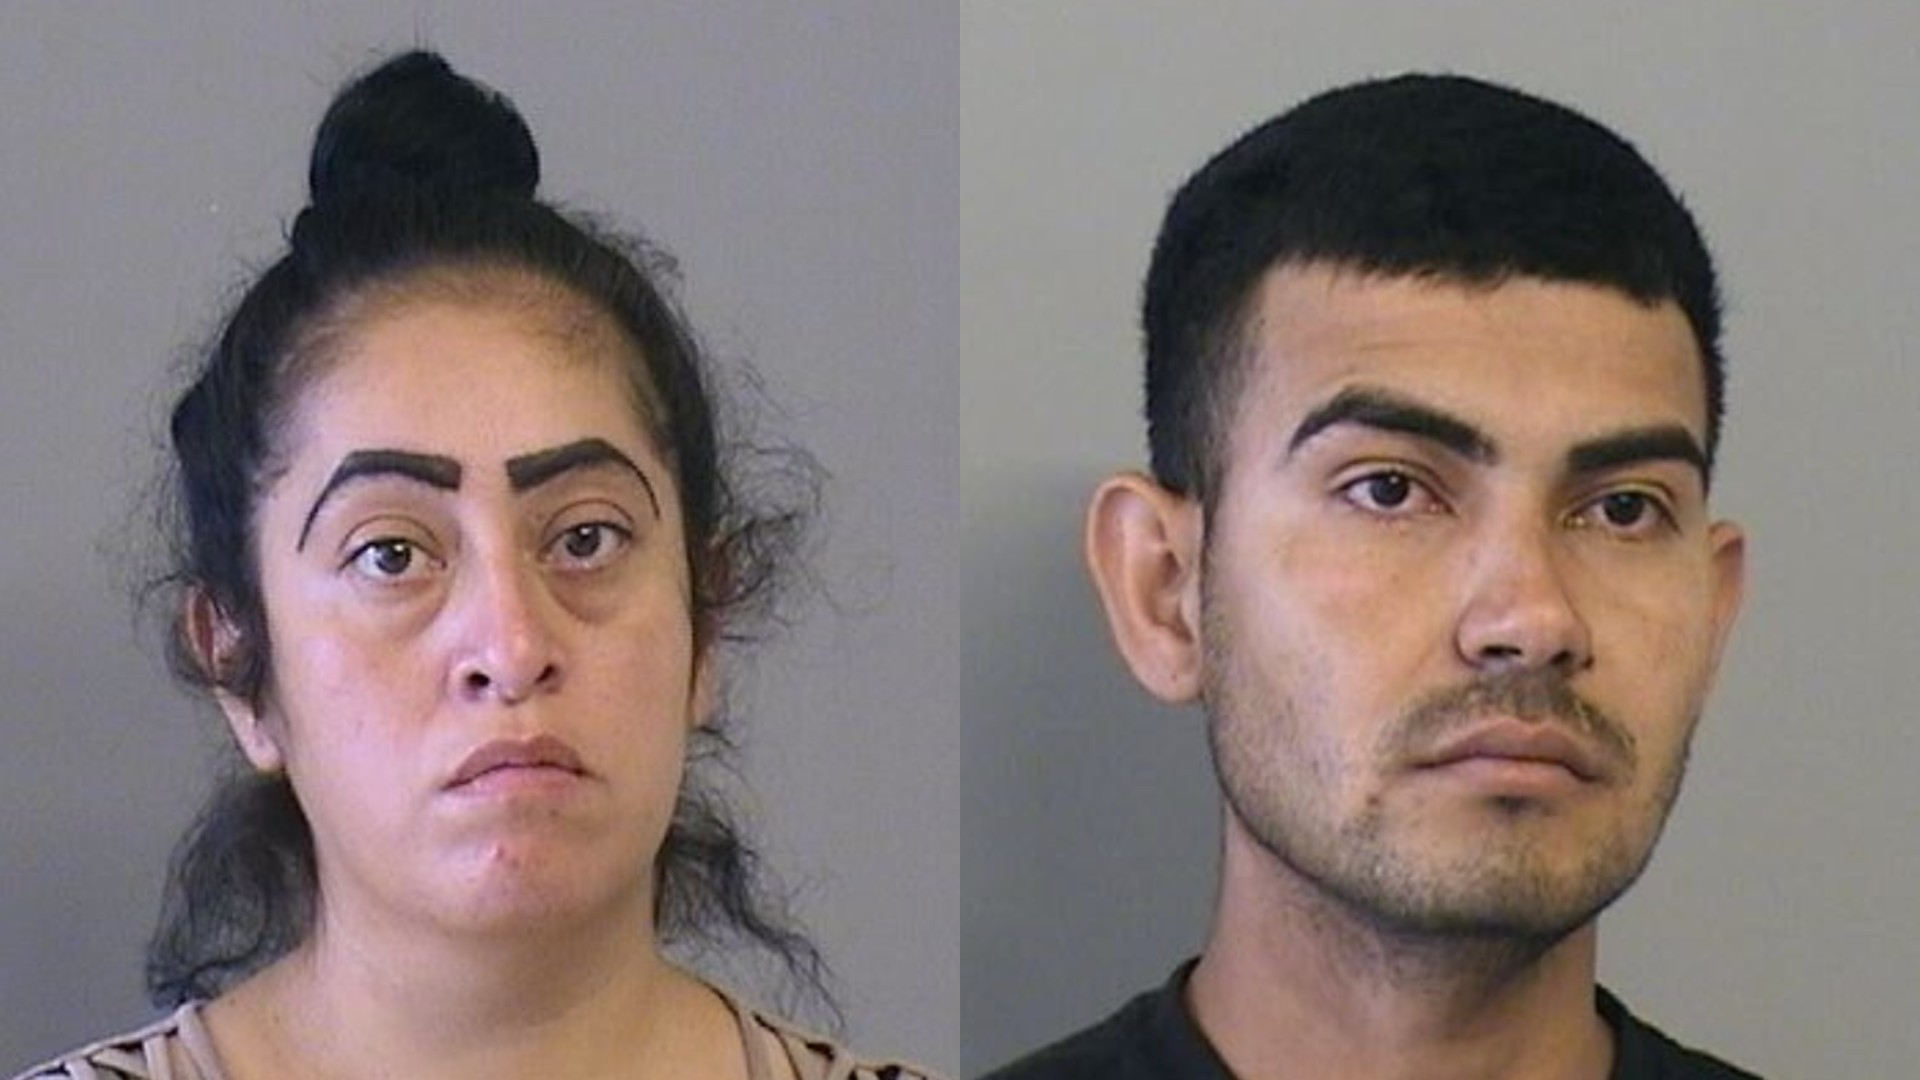 Desiree Castaneda and Juan Miranda-Jara are seen in photos released by the Tulsa Police Department.